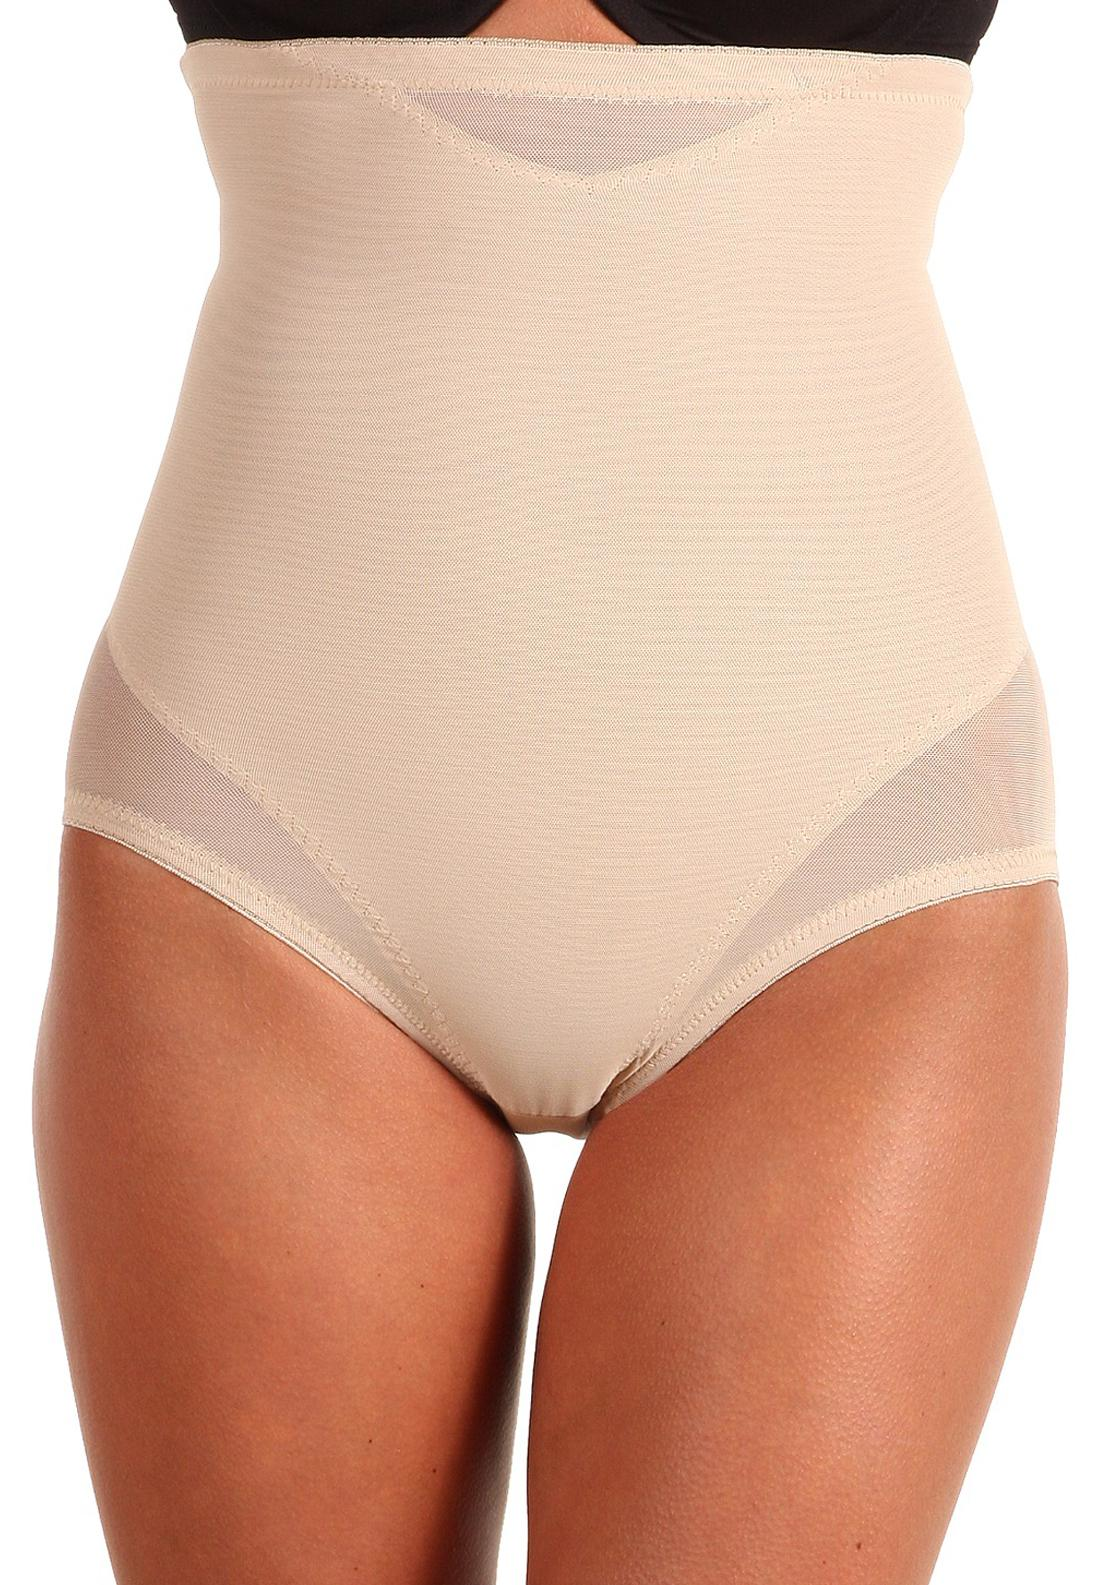 Miraclesuit Sexy Sheer Shaping Hi-Waist Brief Nude